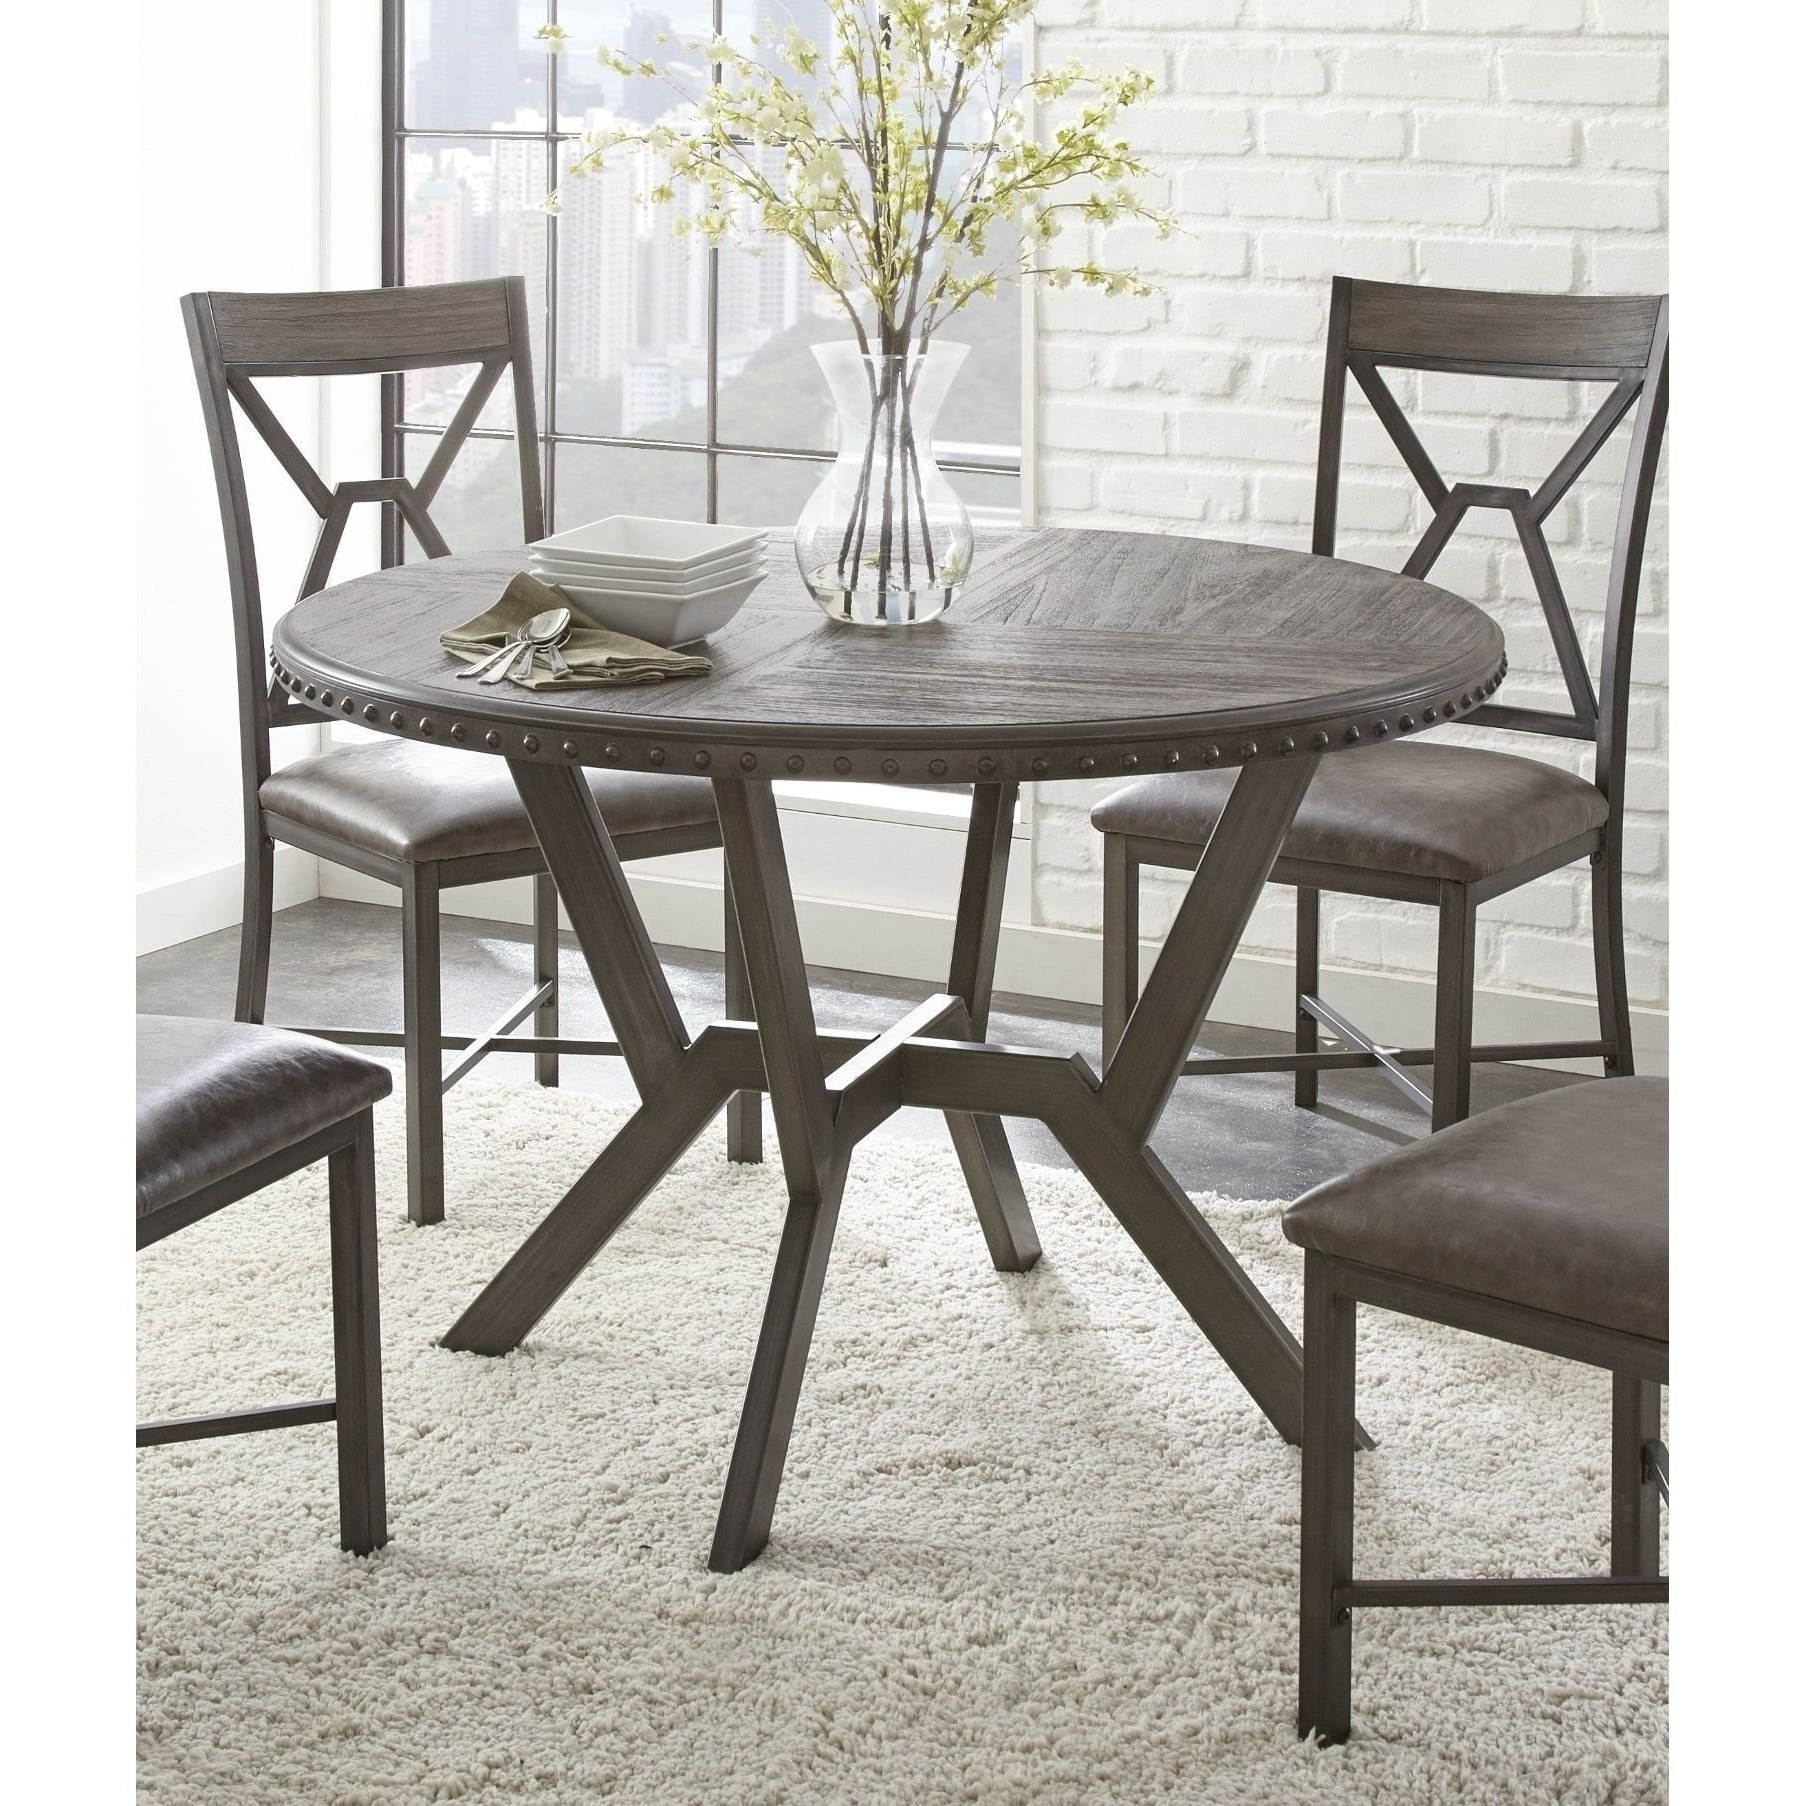 Most Recent Weston Home Farmhouse Dining Chair With Cross Back (Set Of Within Carly 3 Piece Triangle Dining Sets (View 2 of 25)